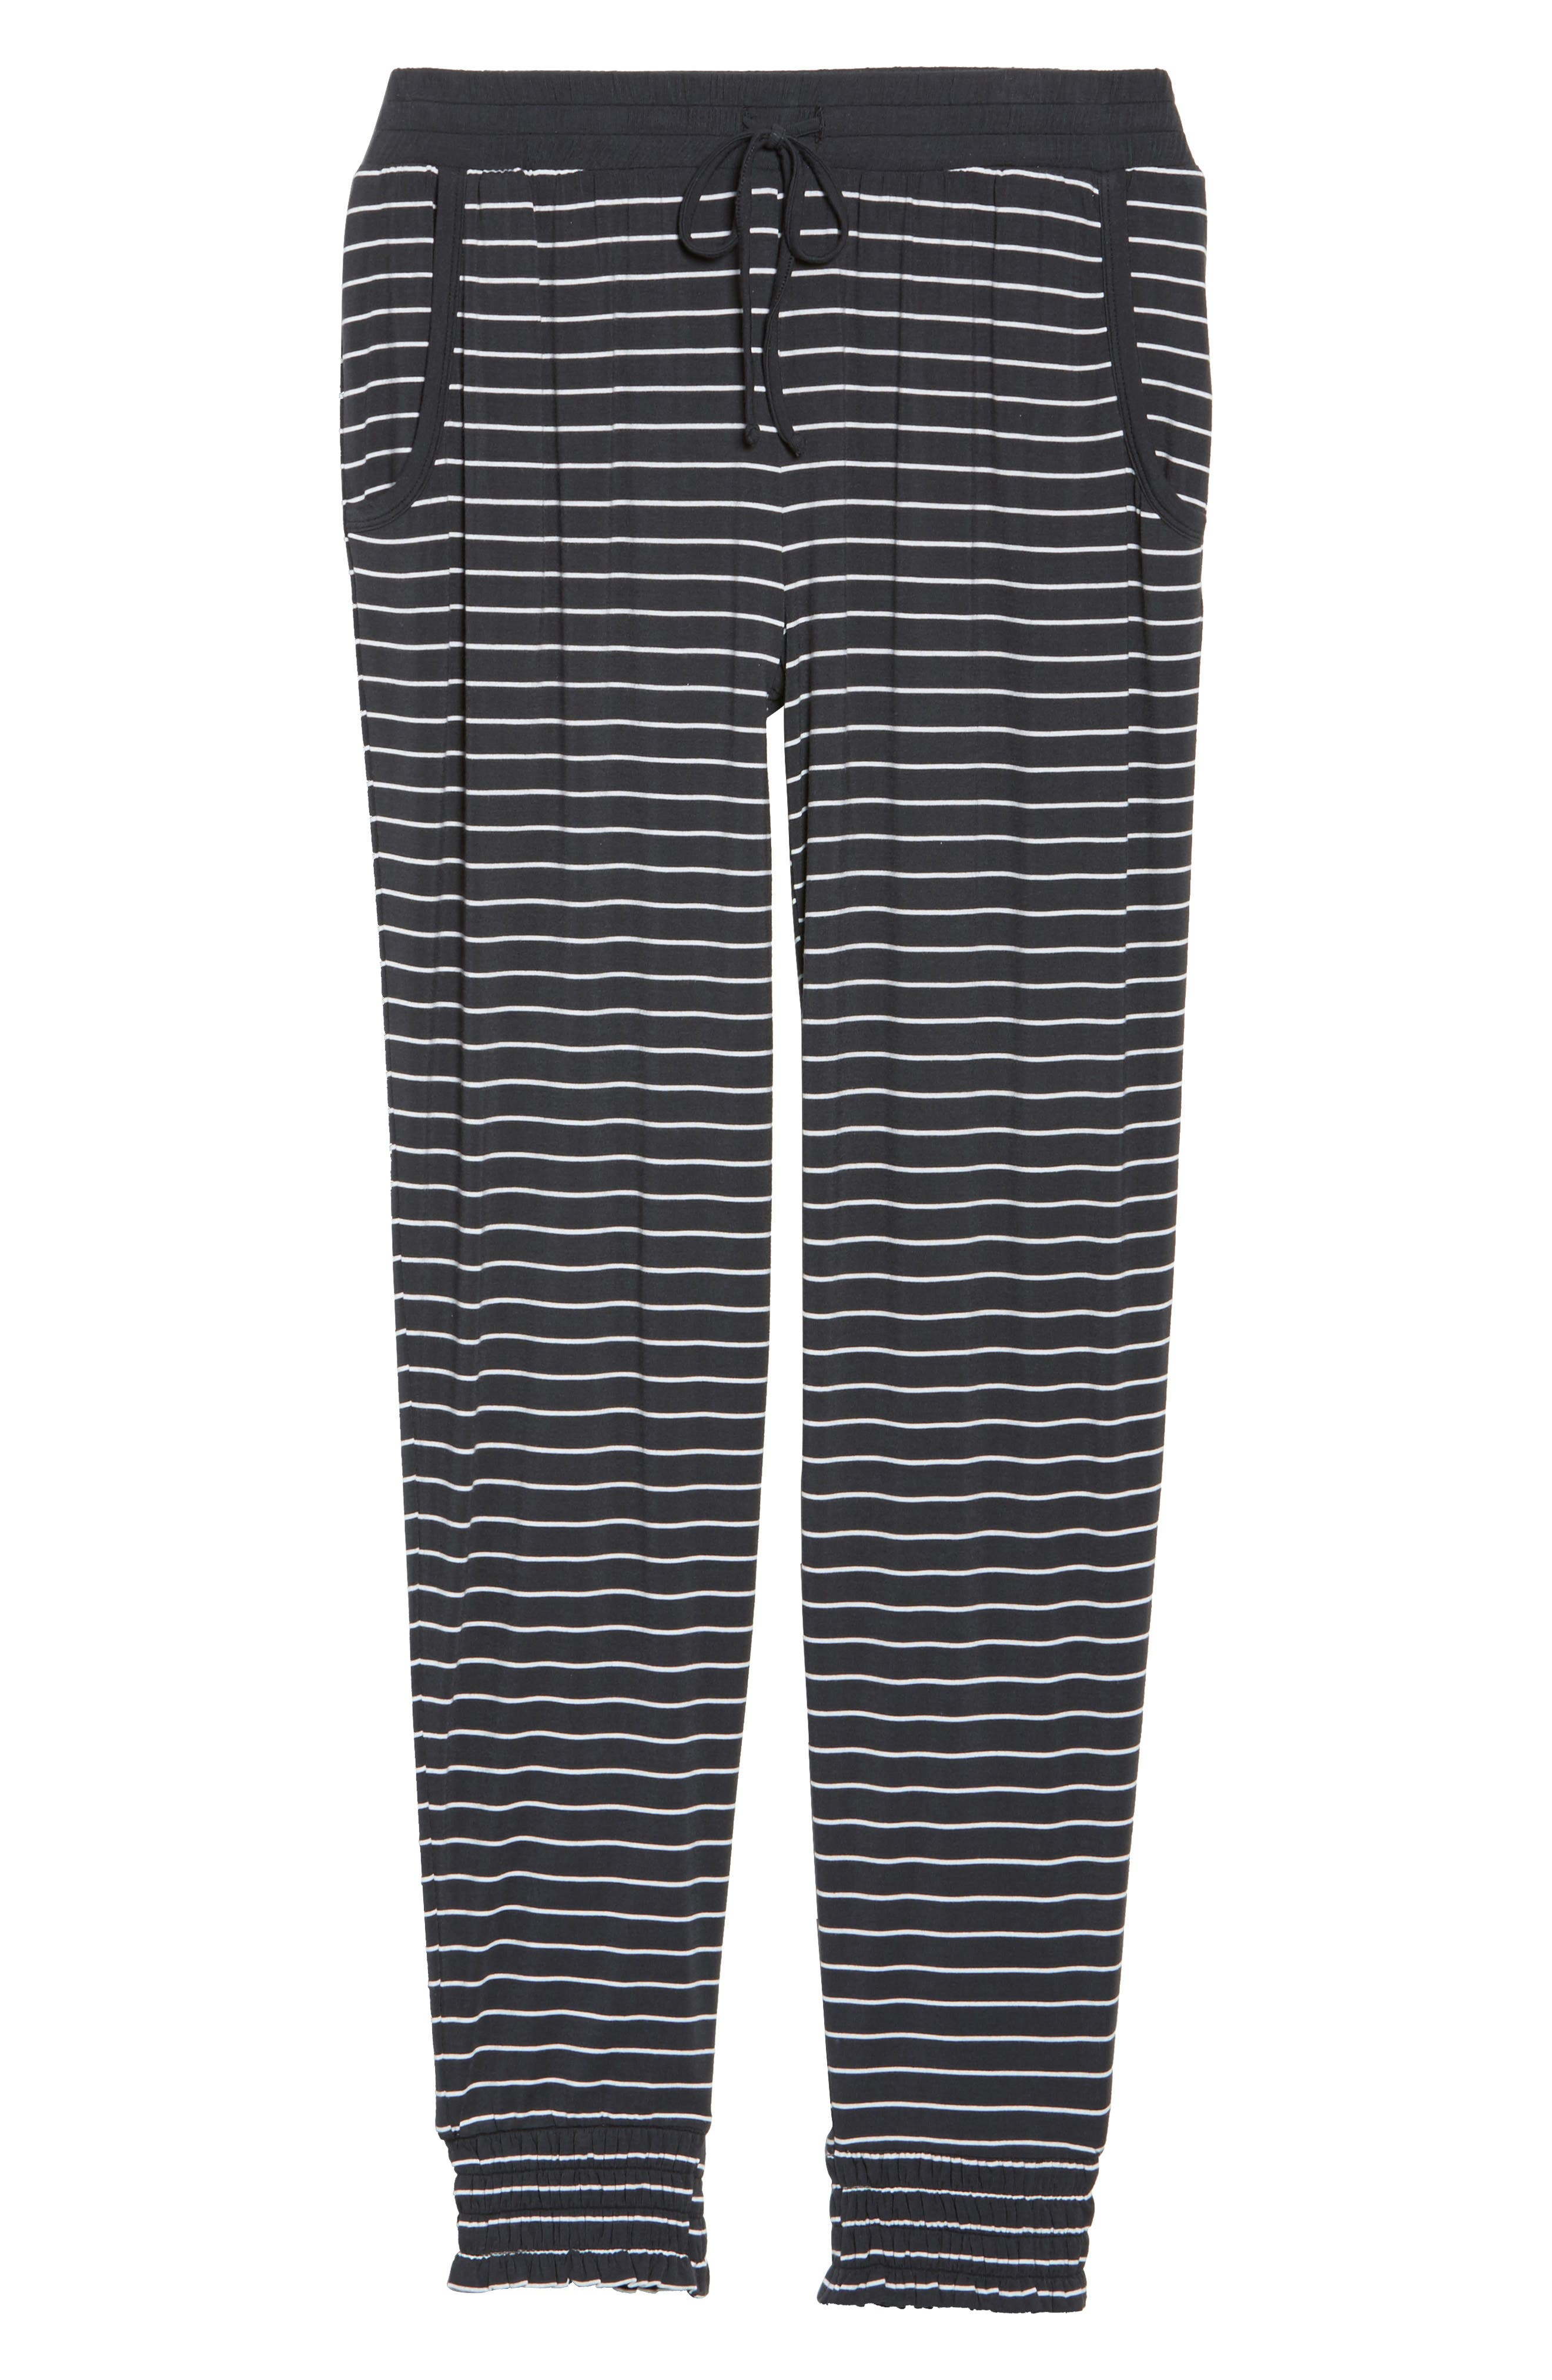 Stripe Jersey Lounge Pants,                             Alternate thumbnail 6, color,                             Smoke